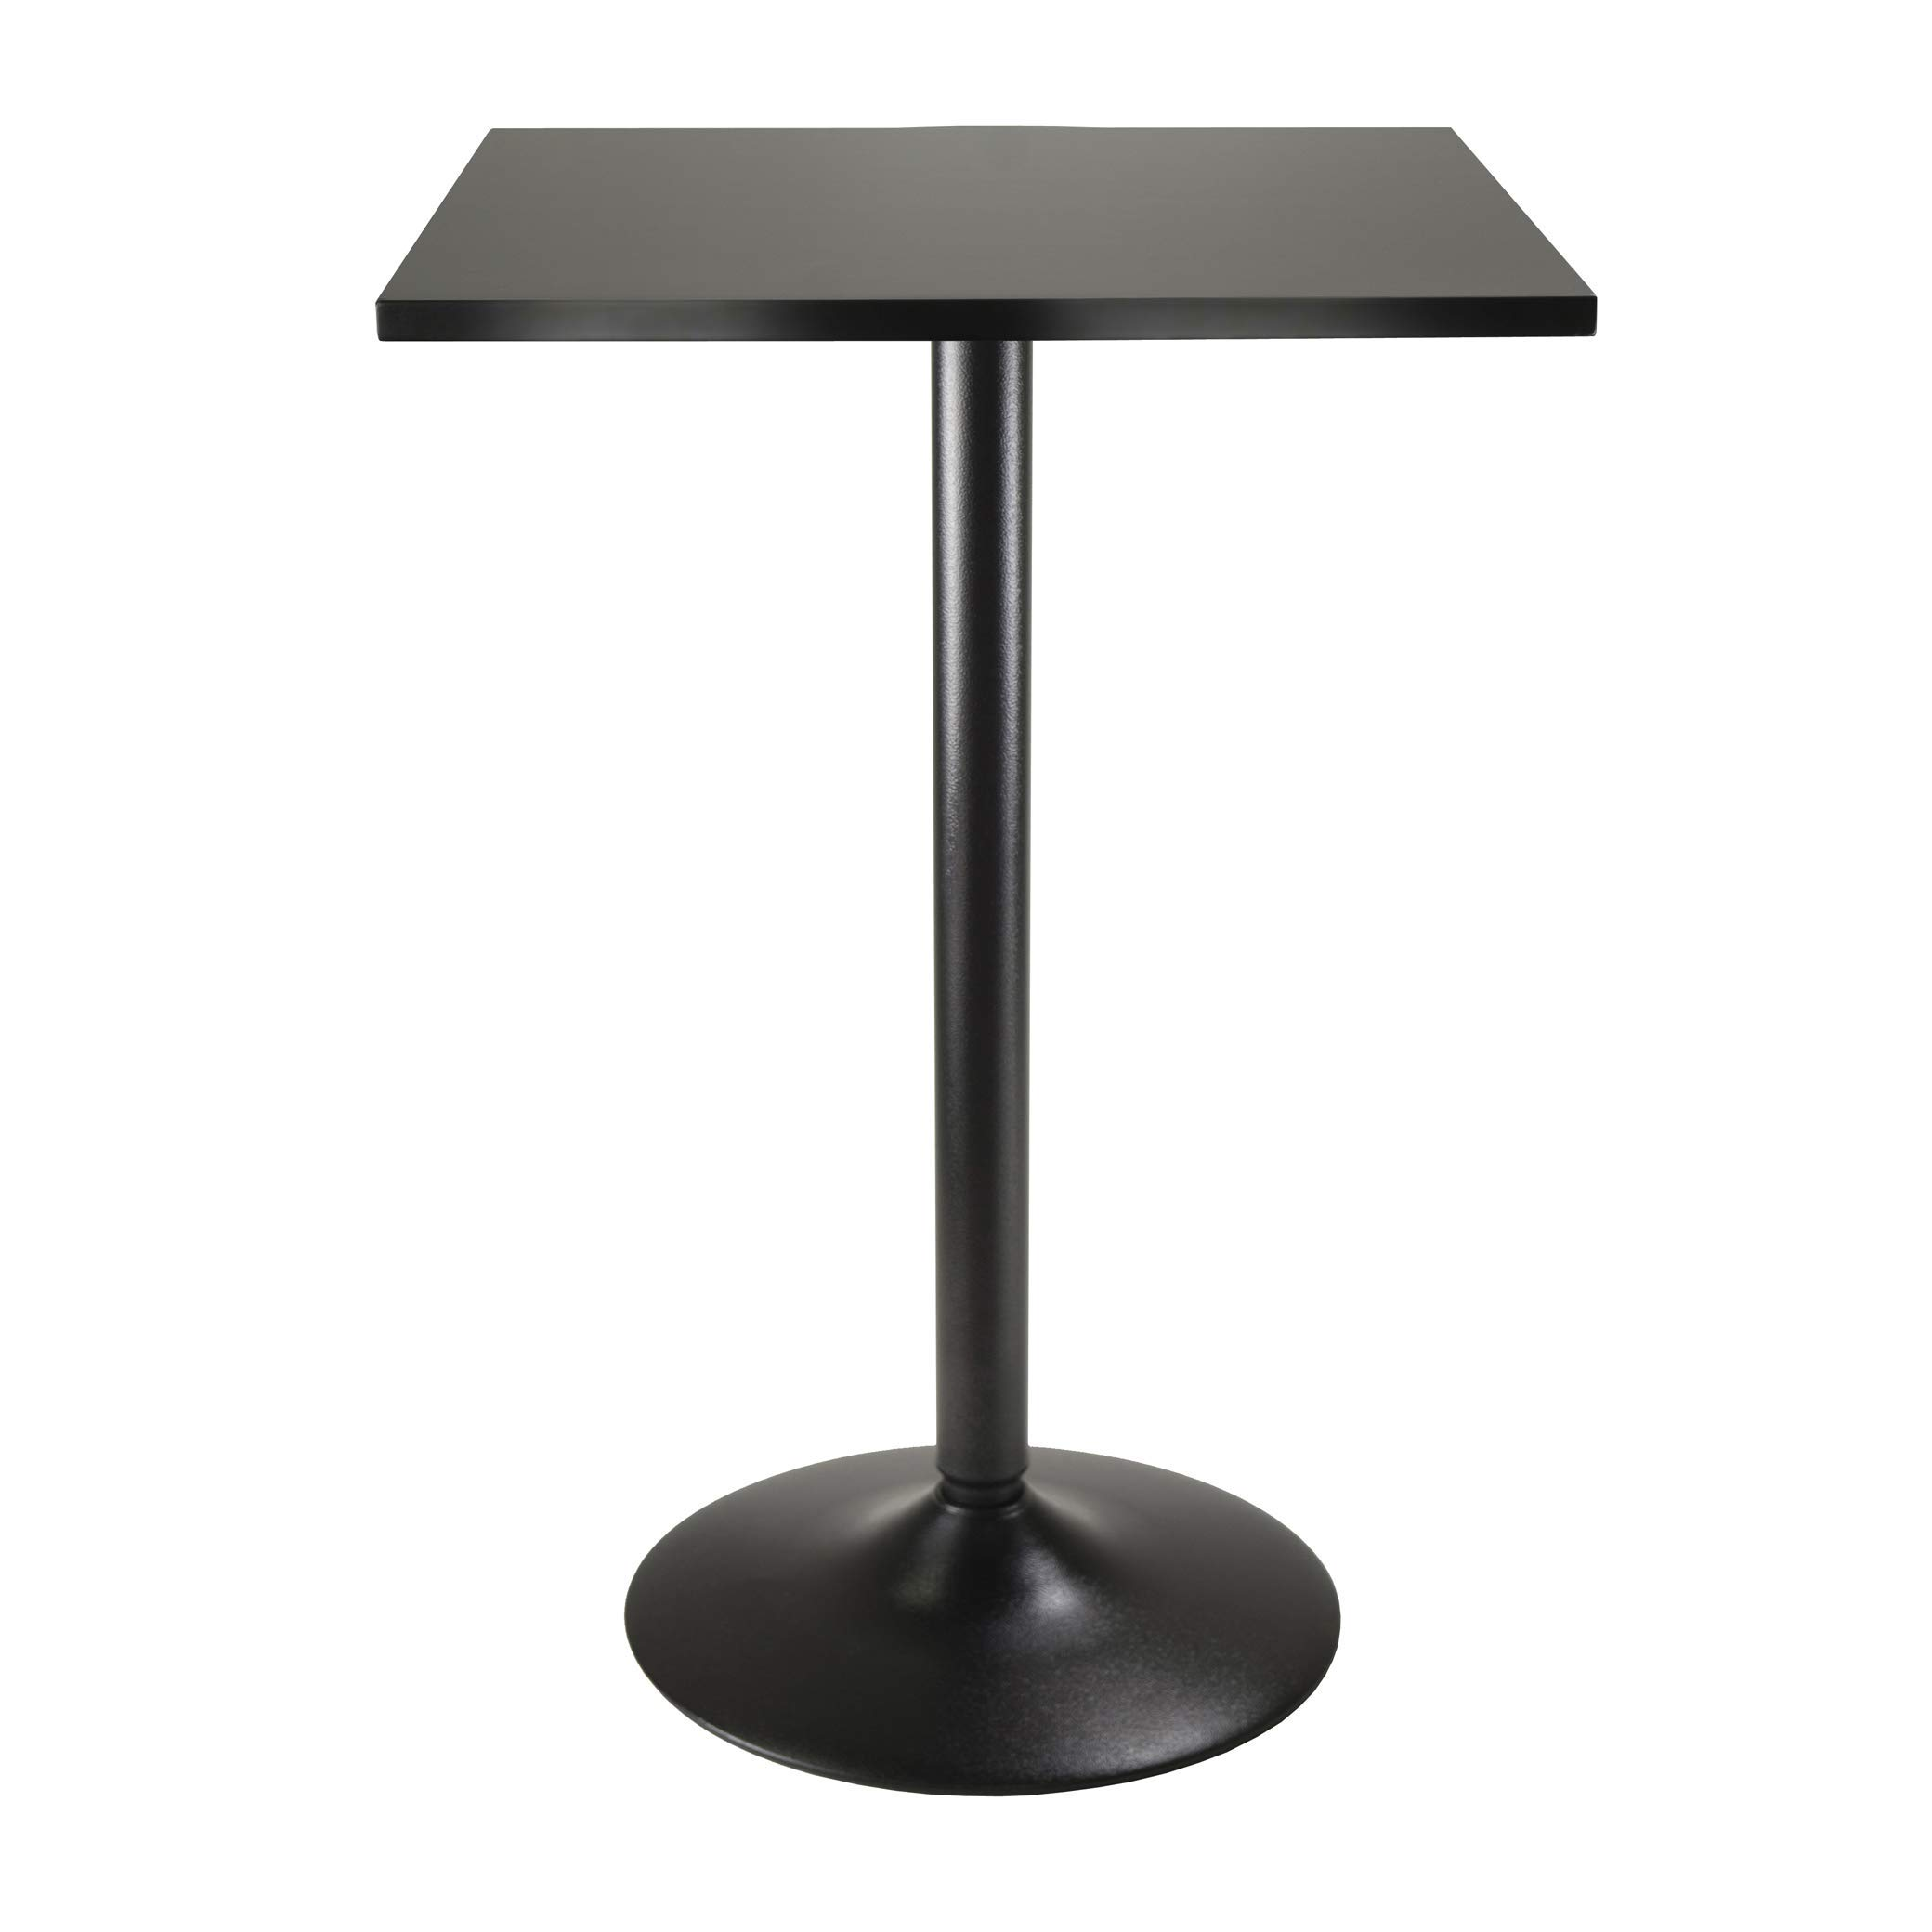 Winsome 20522 Obsidian Dining Black (Renewed) by Winsome (Image #1)